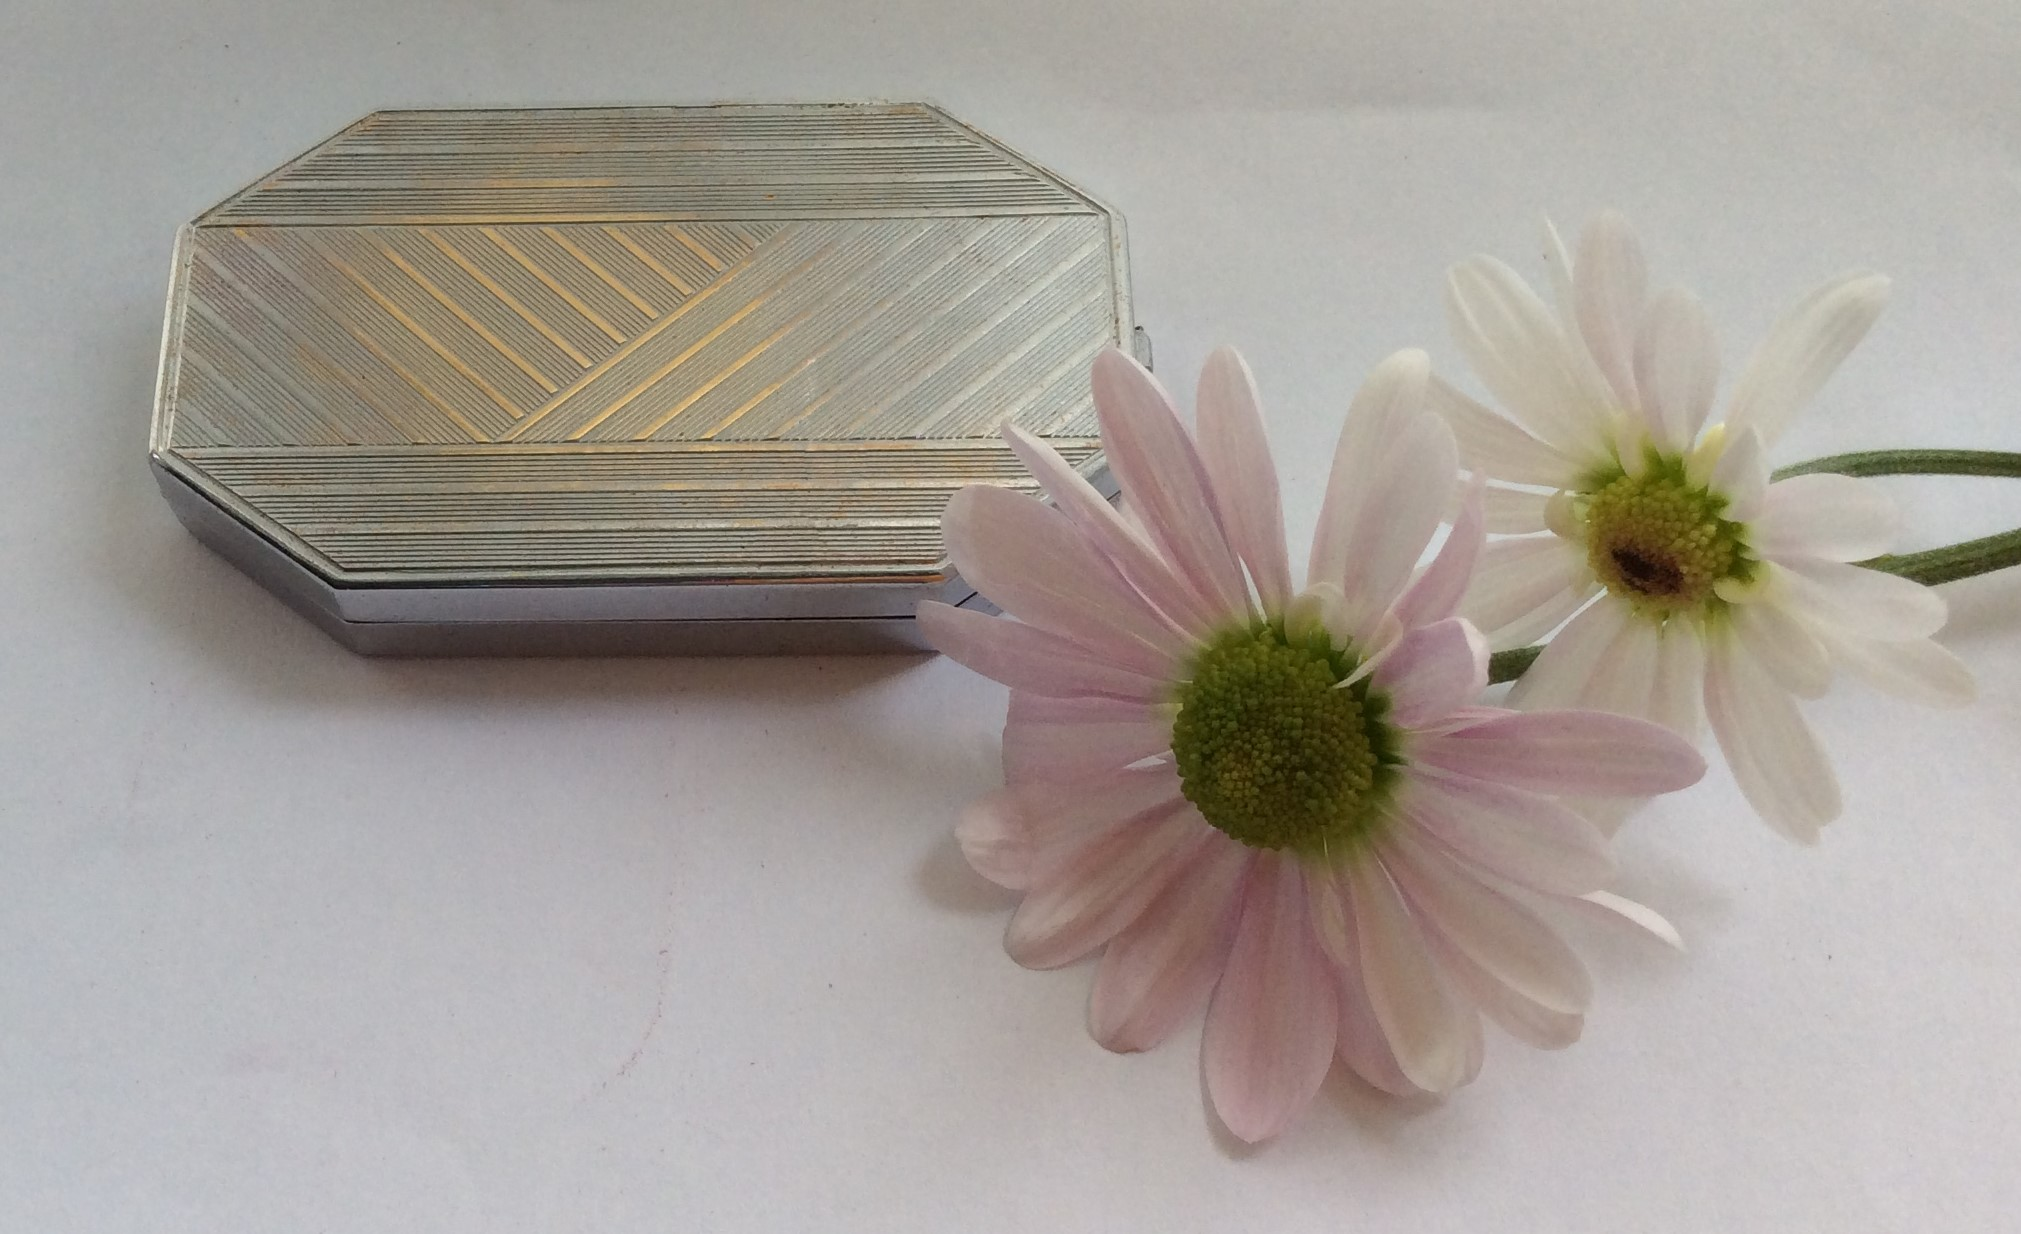 HOUBIGANT FRANCE Art Deco (1929) Pressed Powder Double Compact/Vanity